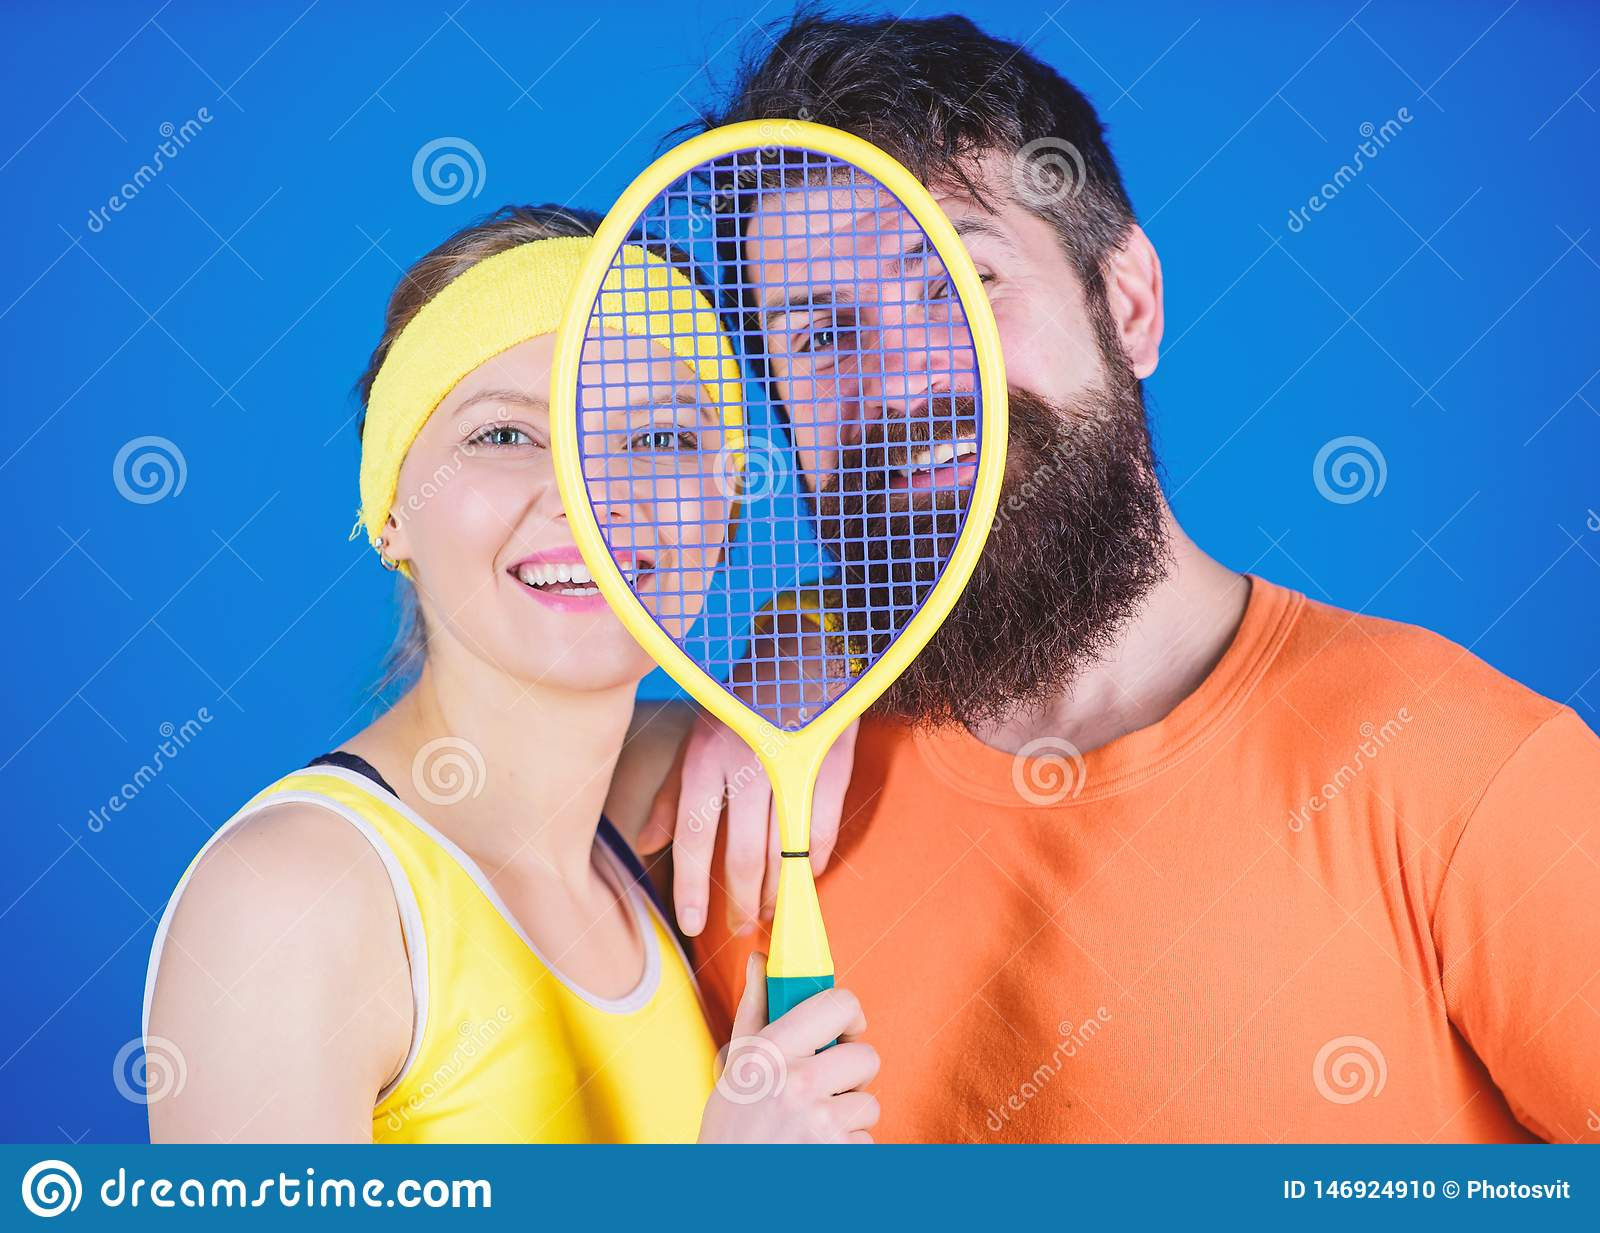 We are one. Athletic Success. Sport equipment. Happy woman and bearded man workout in gym. Strong body muscles. Sporty